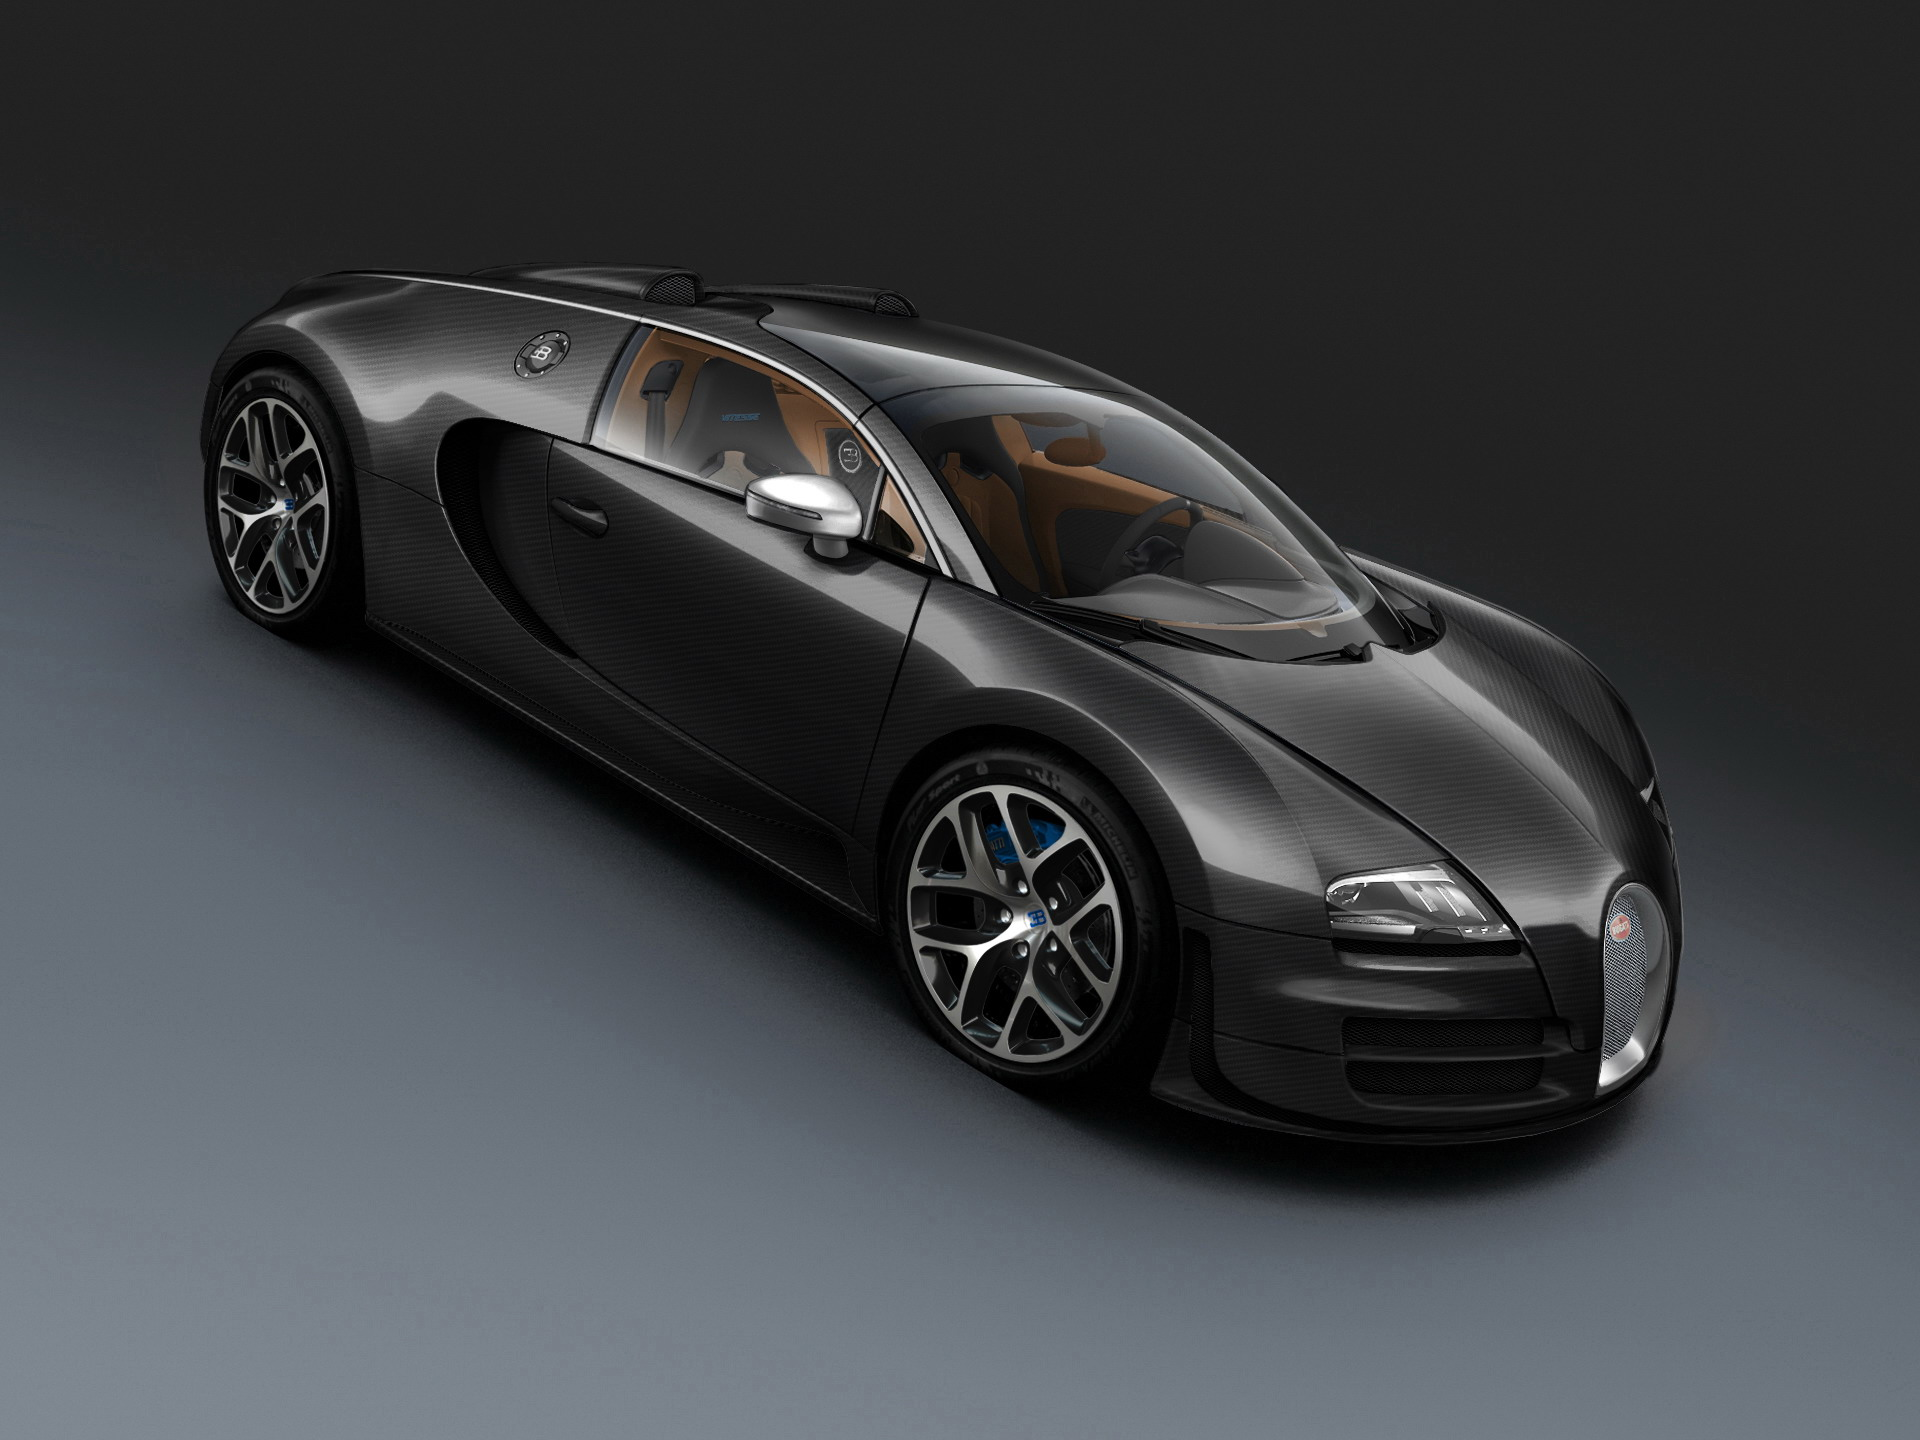 2013 bugatti veyron 16 4 grand sport vitesse black carbon. Black Bedroom Furniture Sets. Home Design Ideas